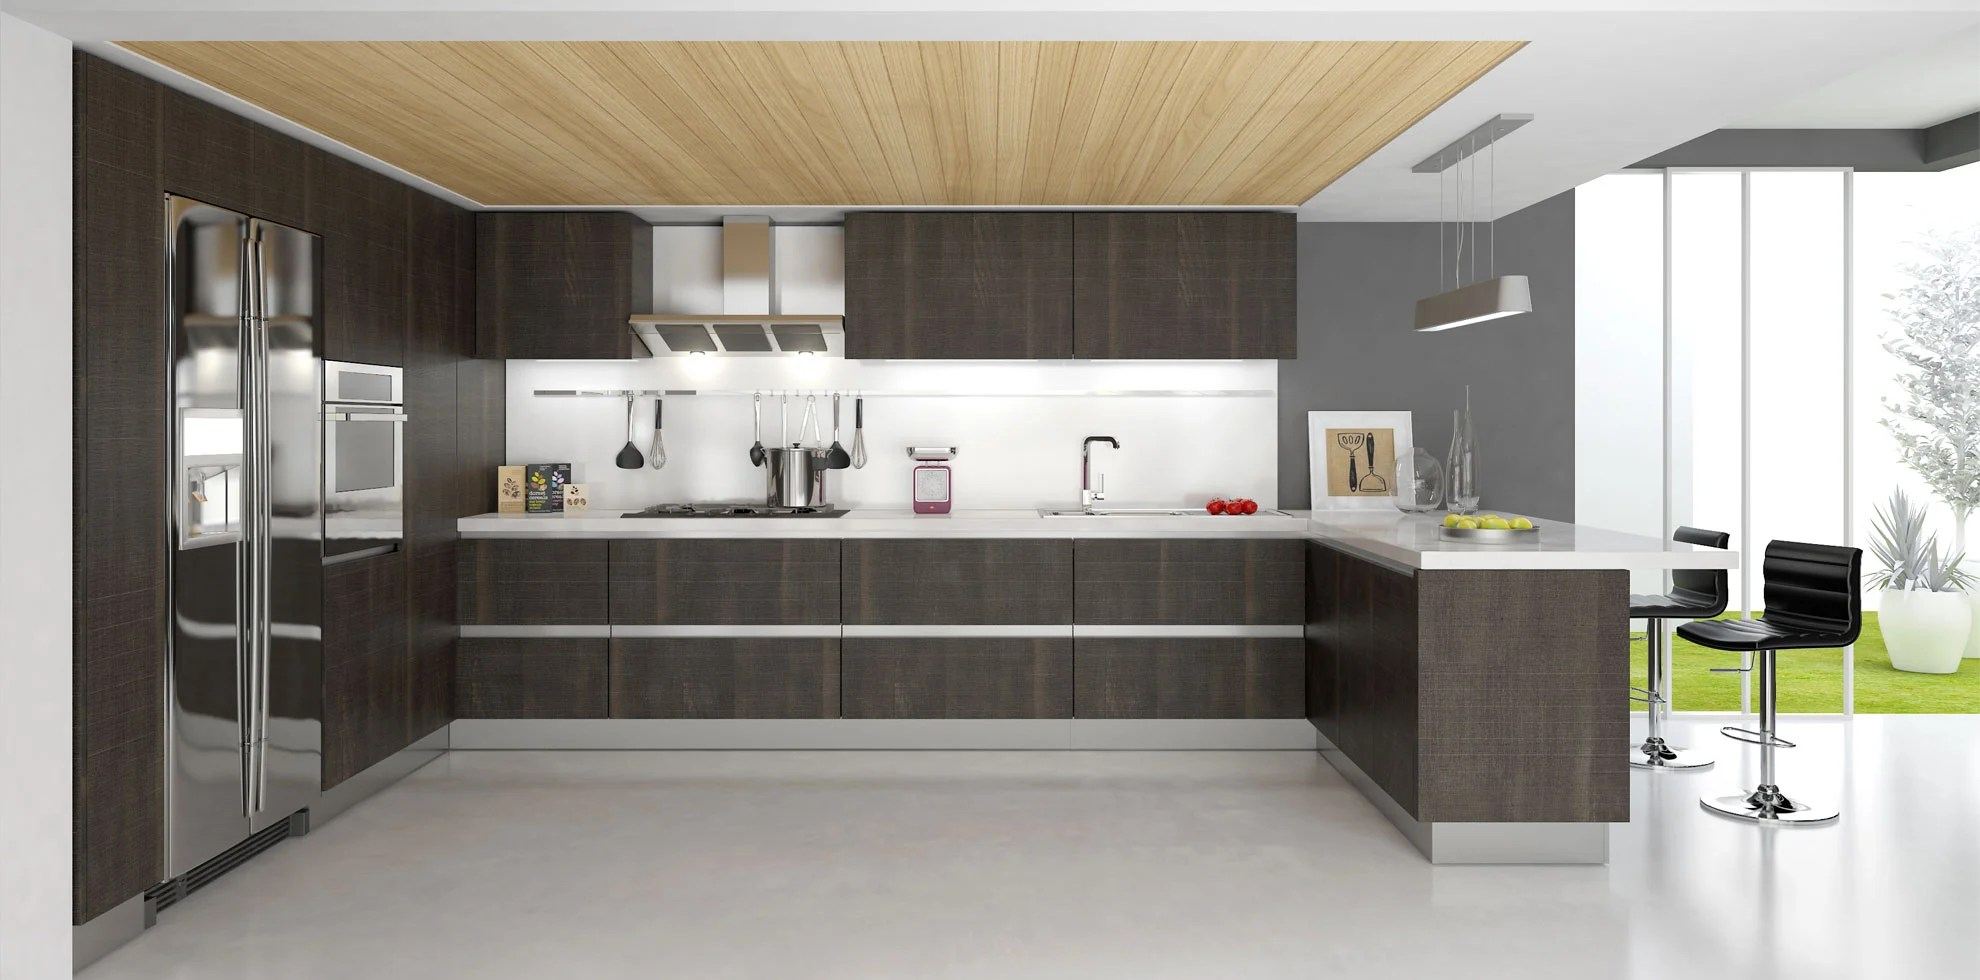 Kitchen Interior Design Materials